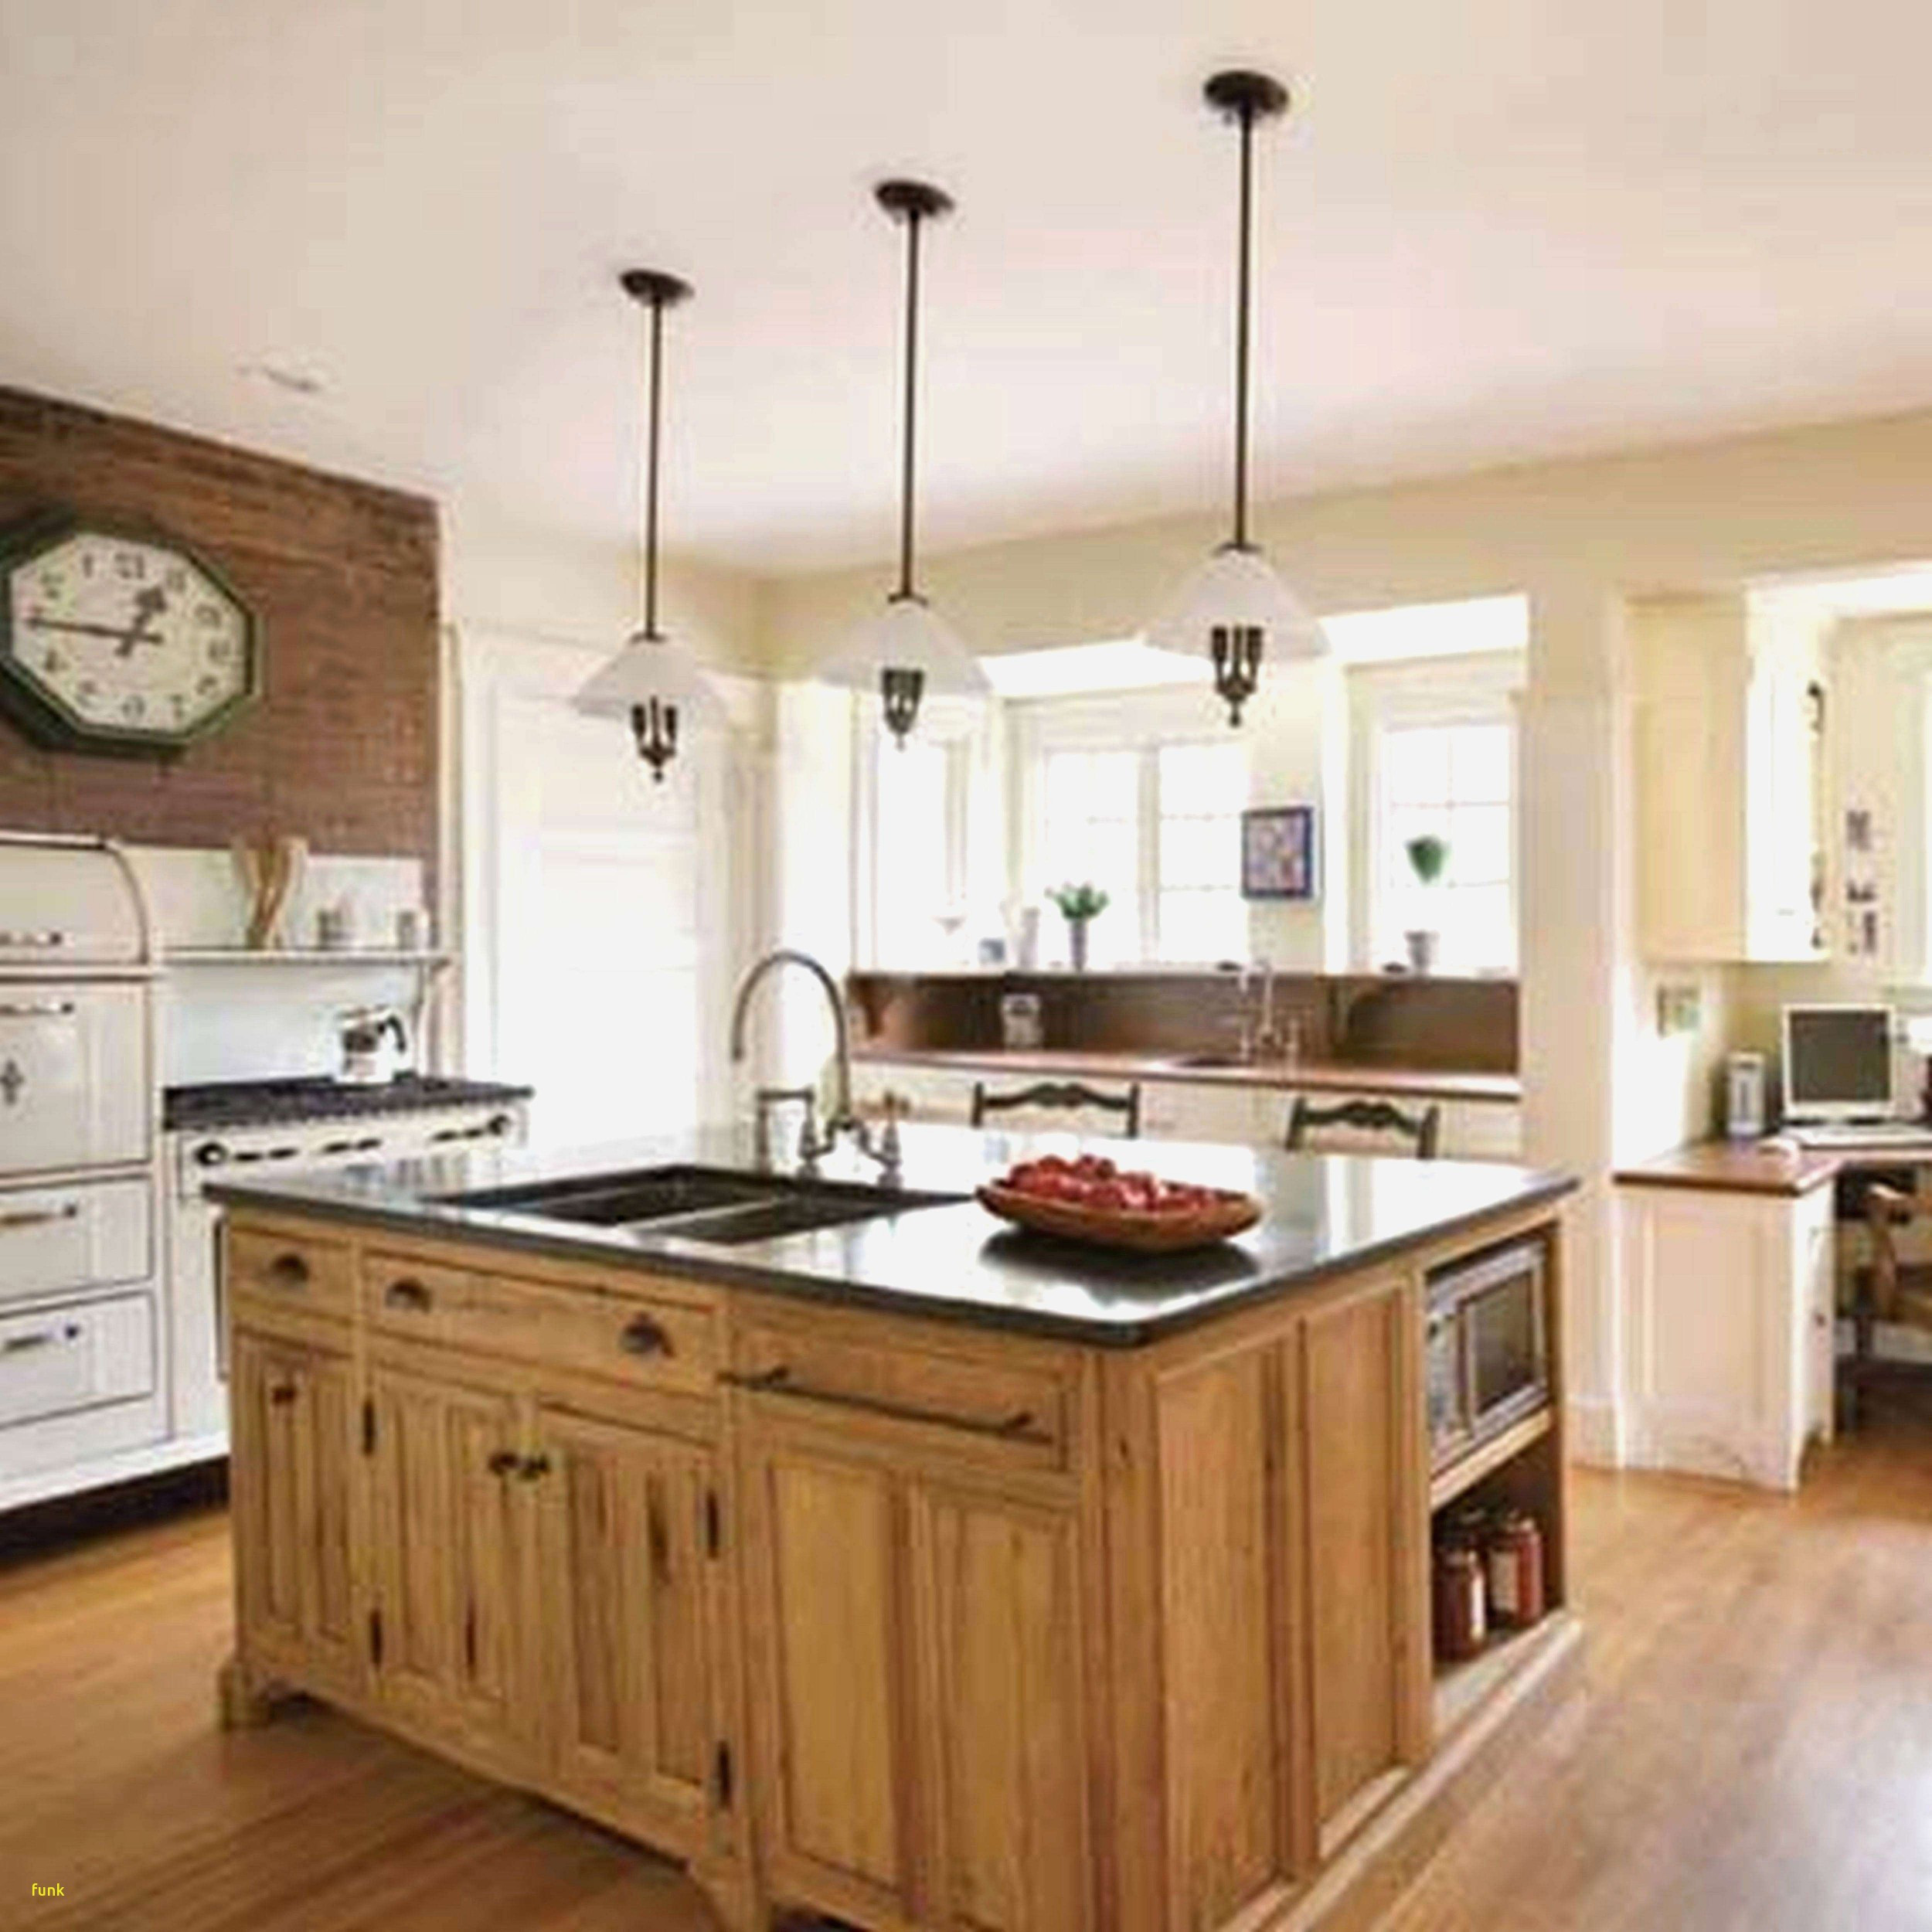 images of hardwood floors in kitchens of kitchen ideas with oak cabinets amazing kitchen ideas what color in kitchen ideas with oak cabinets wonderful kitchen kitchen designing kitchen designing 0d kitchens scheme